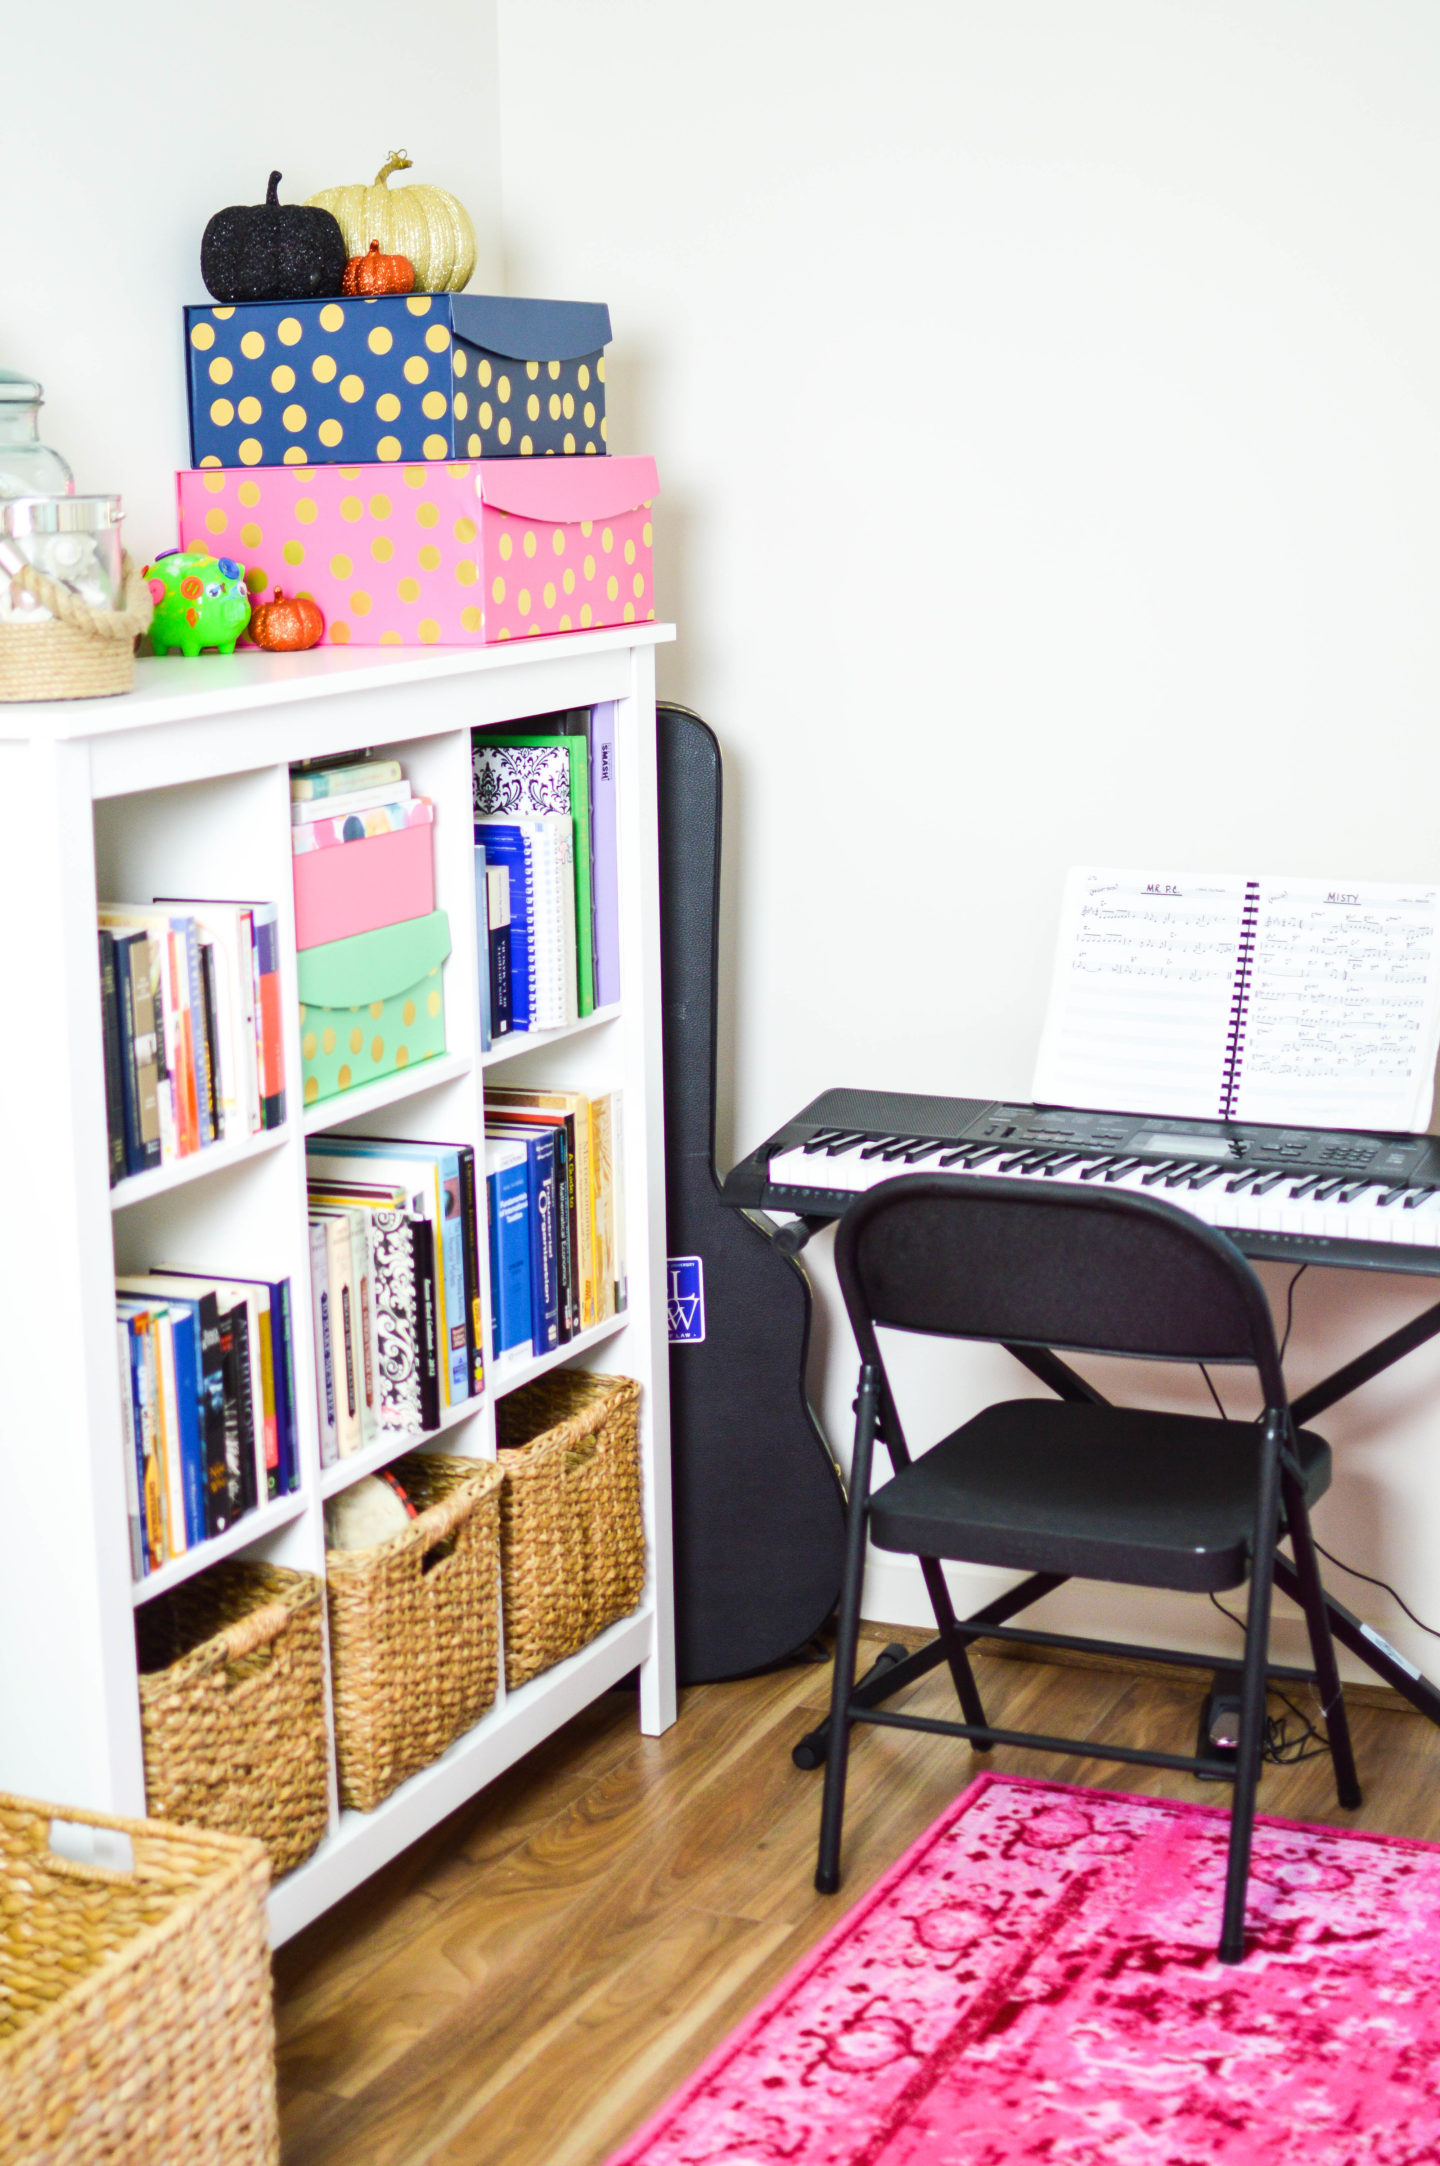 How to Take Advantage of a Small Space | Breezing Through